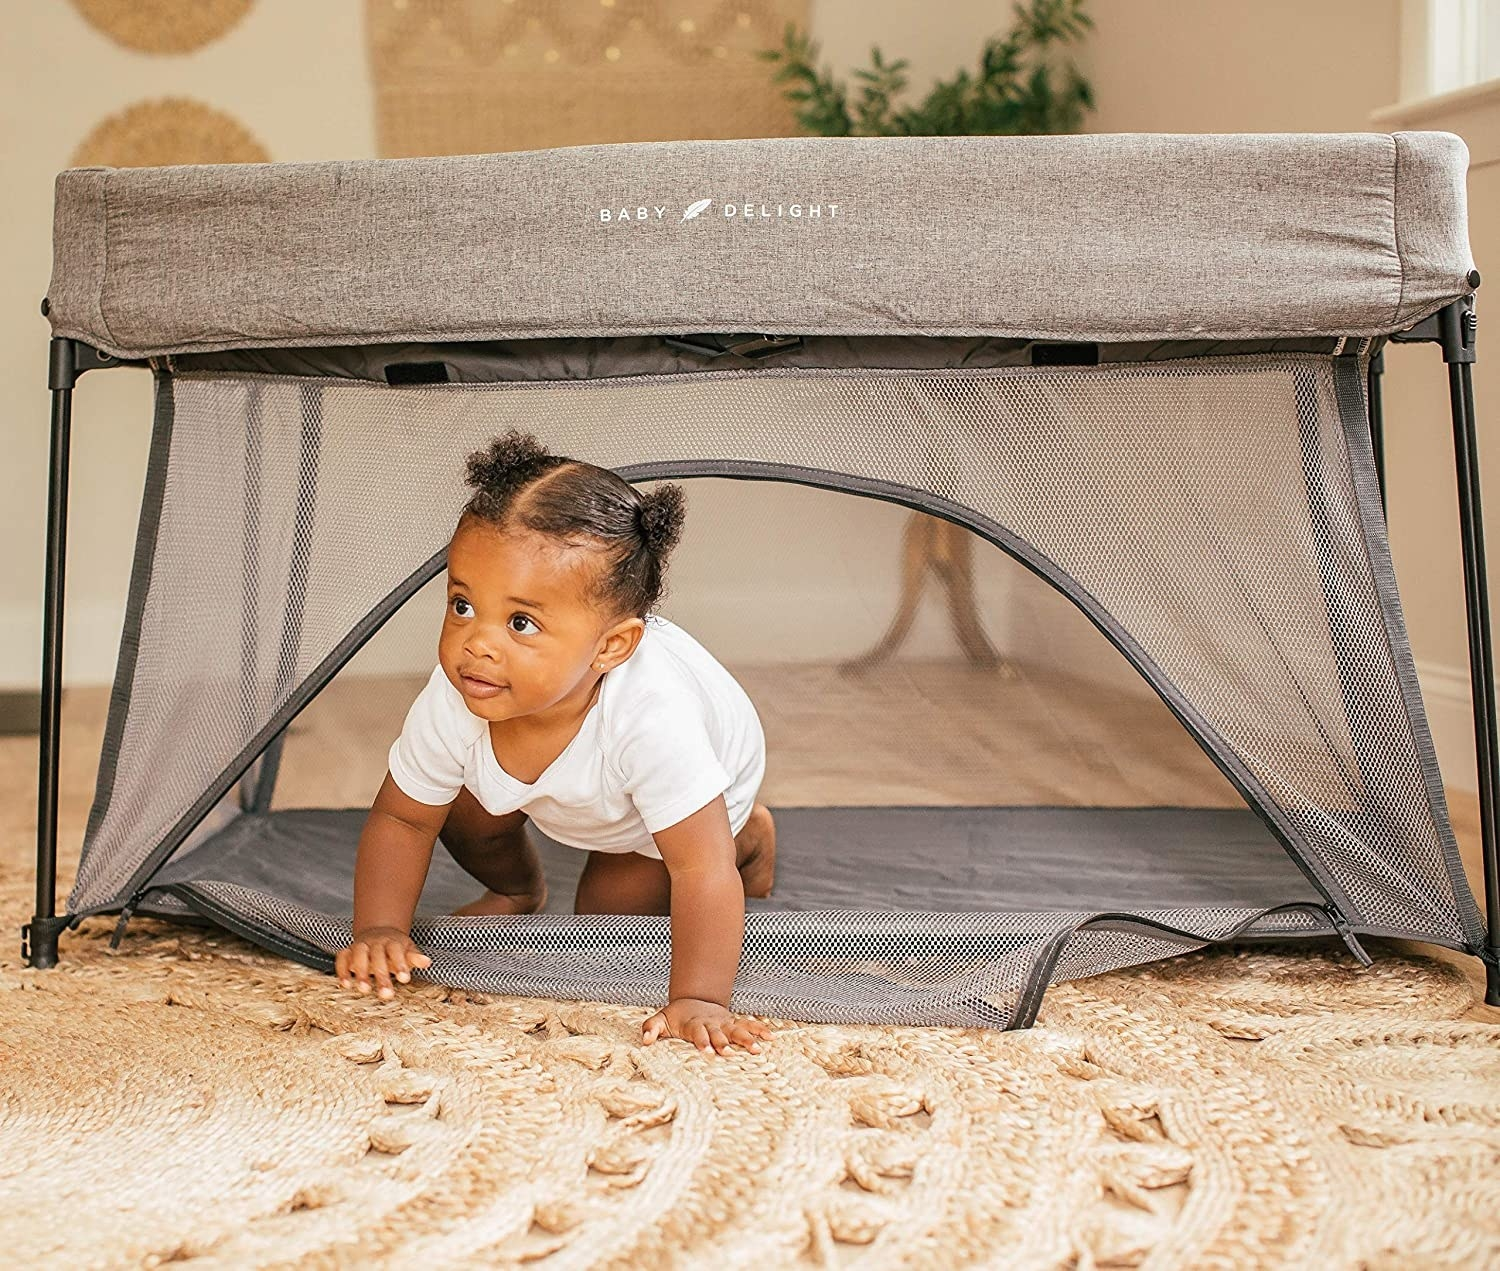 A baby crawling out of the bottom door in the mesh play space. All sides are clear mesh with a fabric cover on the top, covering the adjustable poles that create the frame